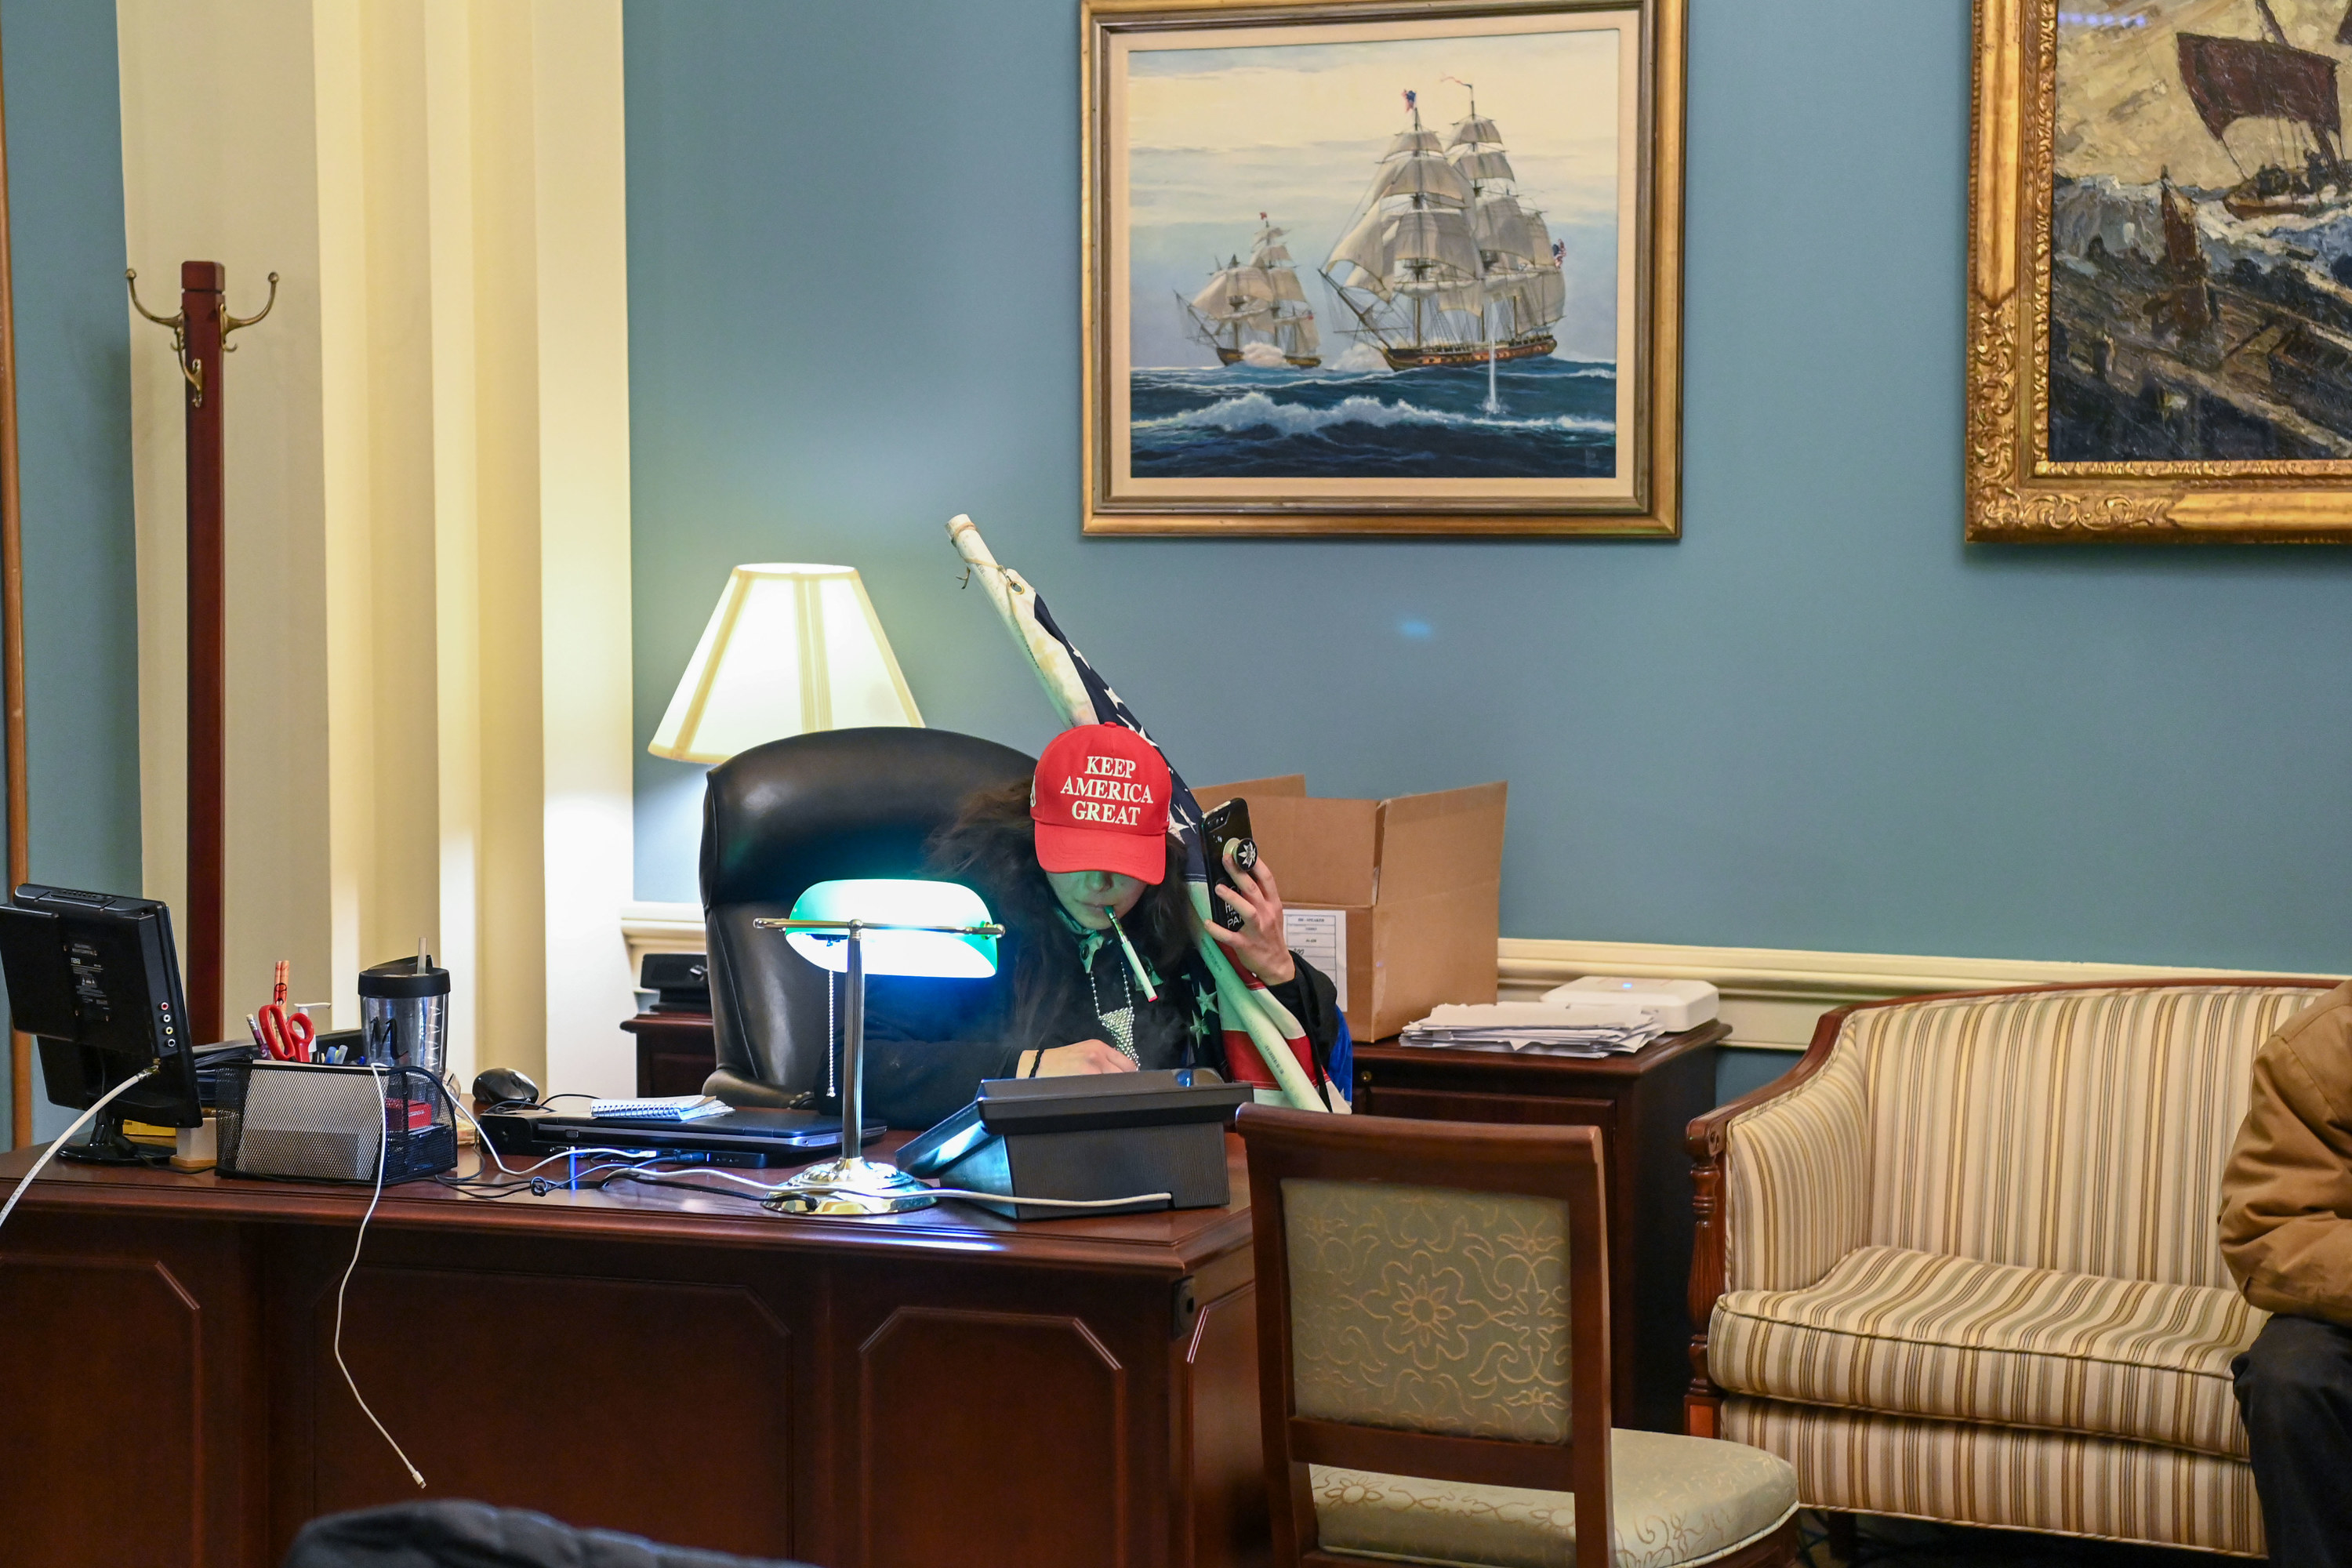 A Trump supporter in the office of a member of Congress